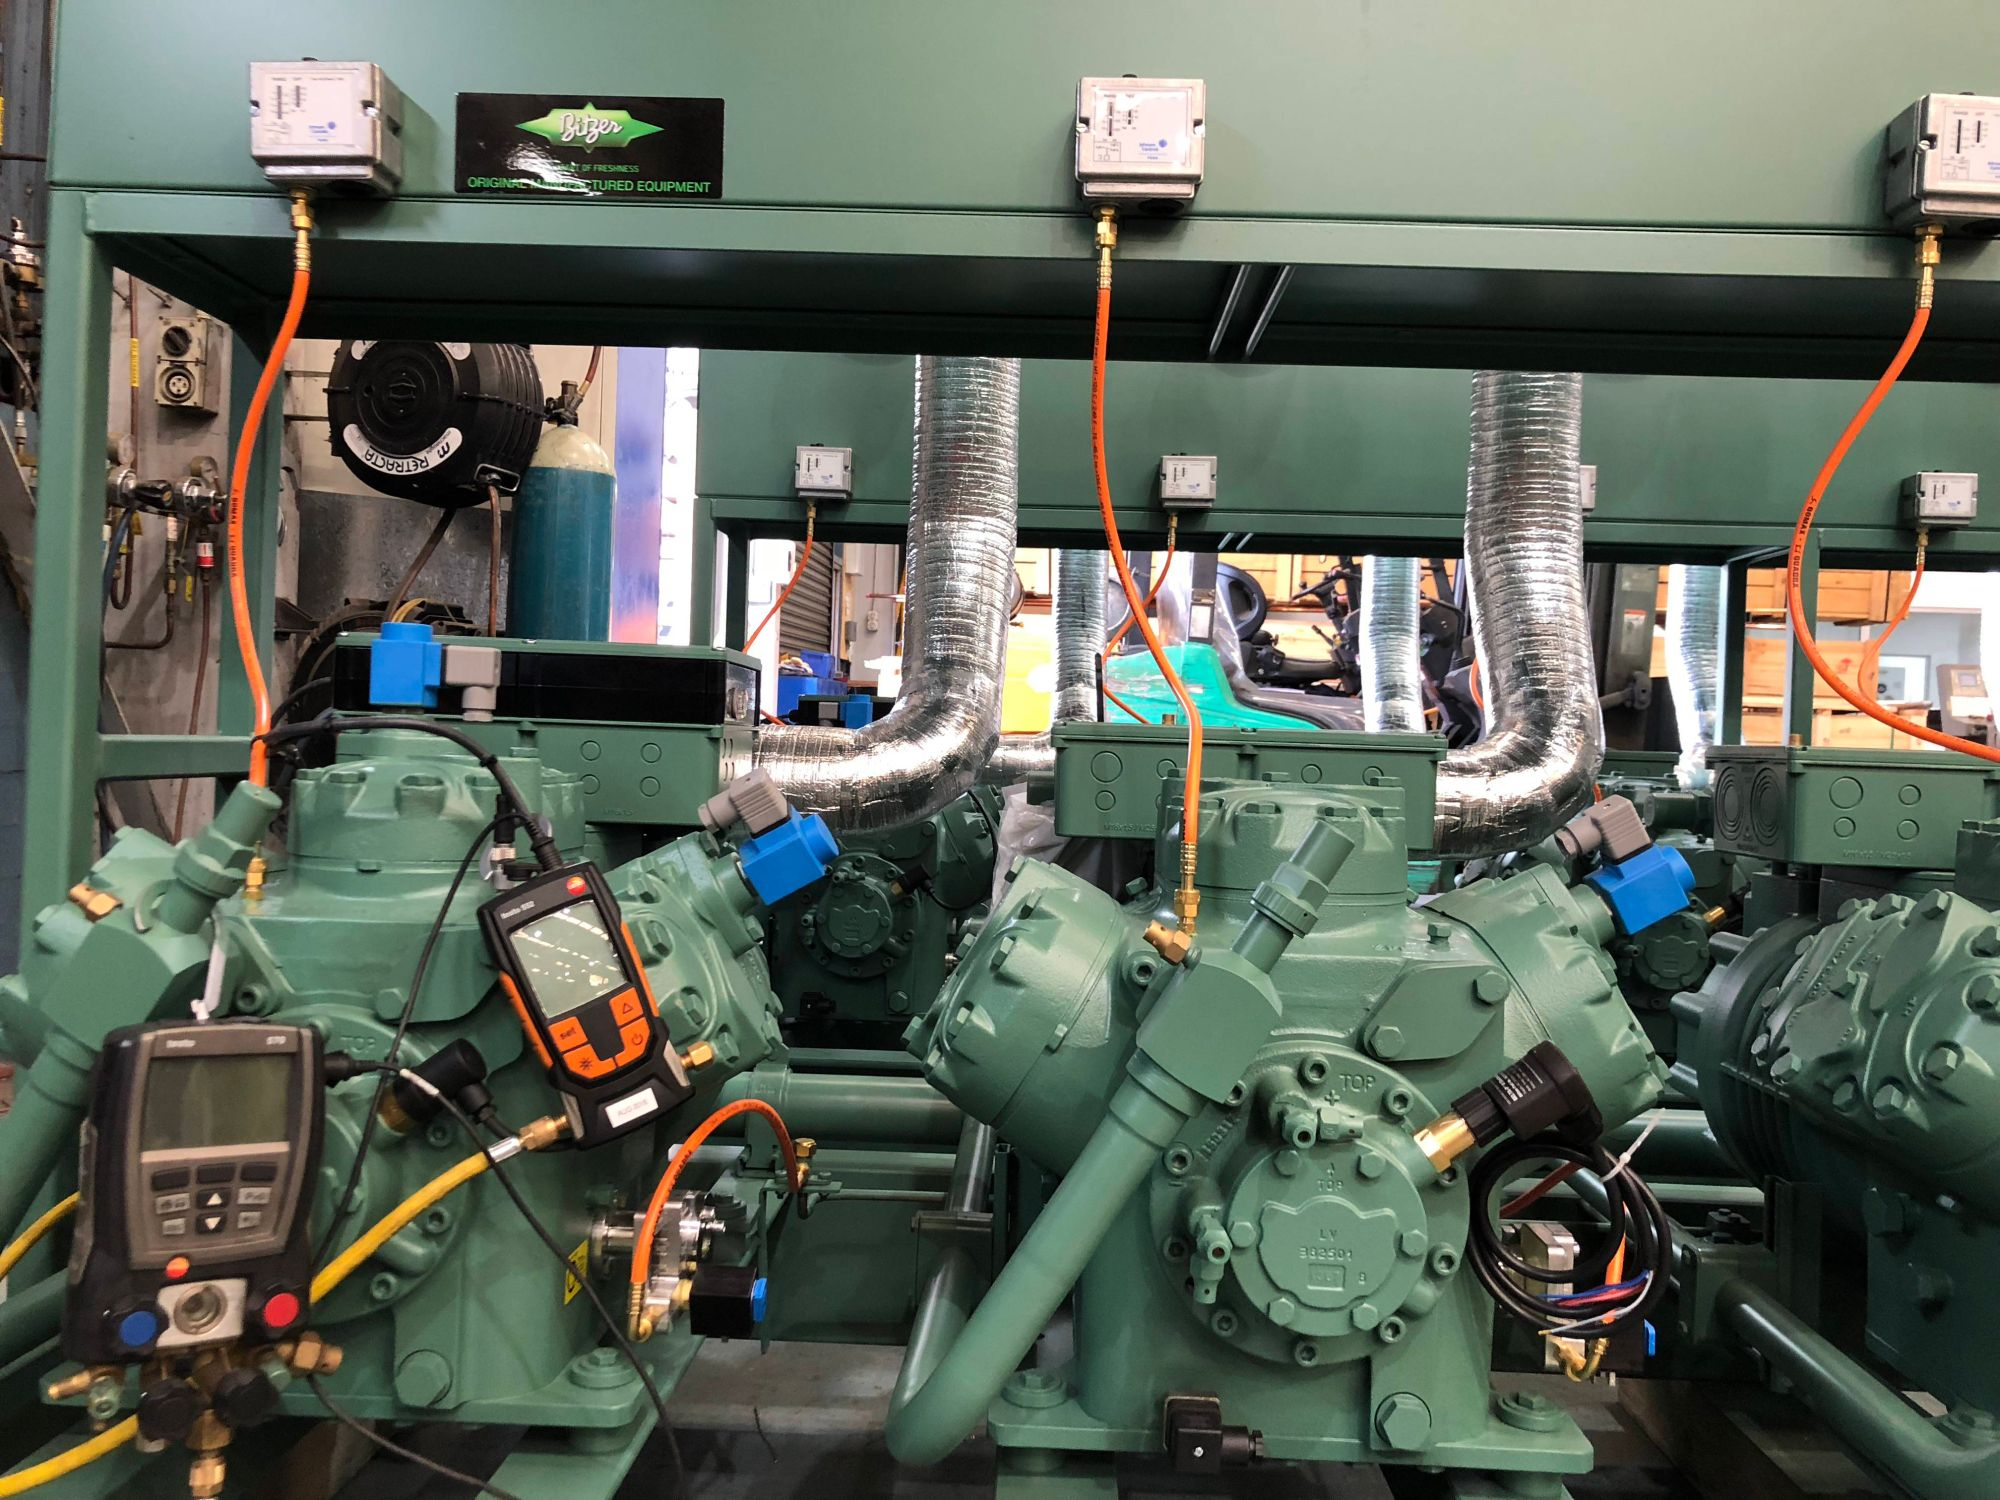 The testo 570 & 552 devices are used to monitor the performance of BITZER's various refrigeration units.